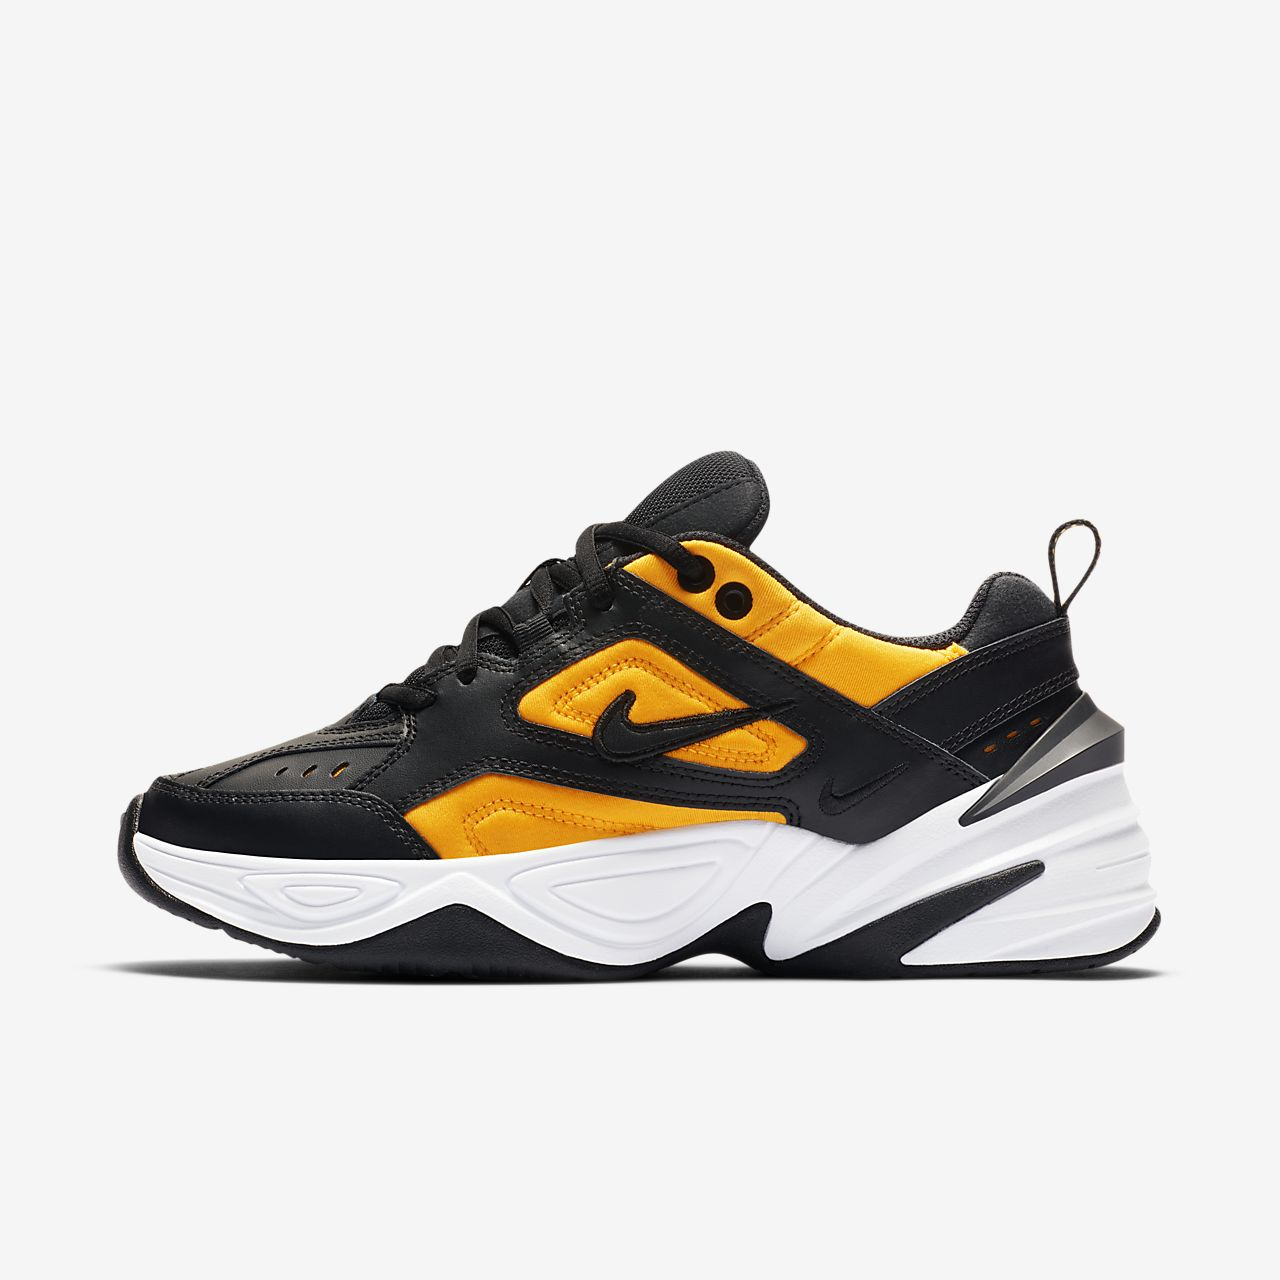 pretty nice 410b5 a1ad0 Low Resolution Chaussure Nike M2K Tekno Chaussure Nike M2K Tekno